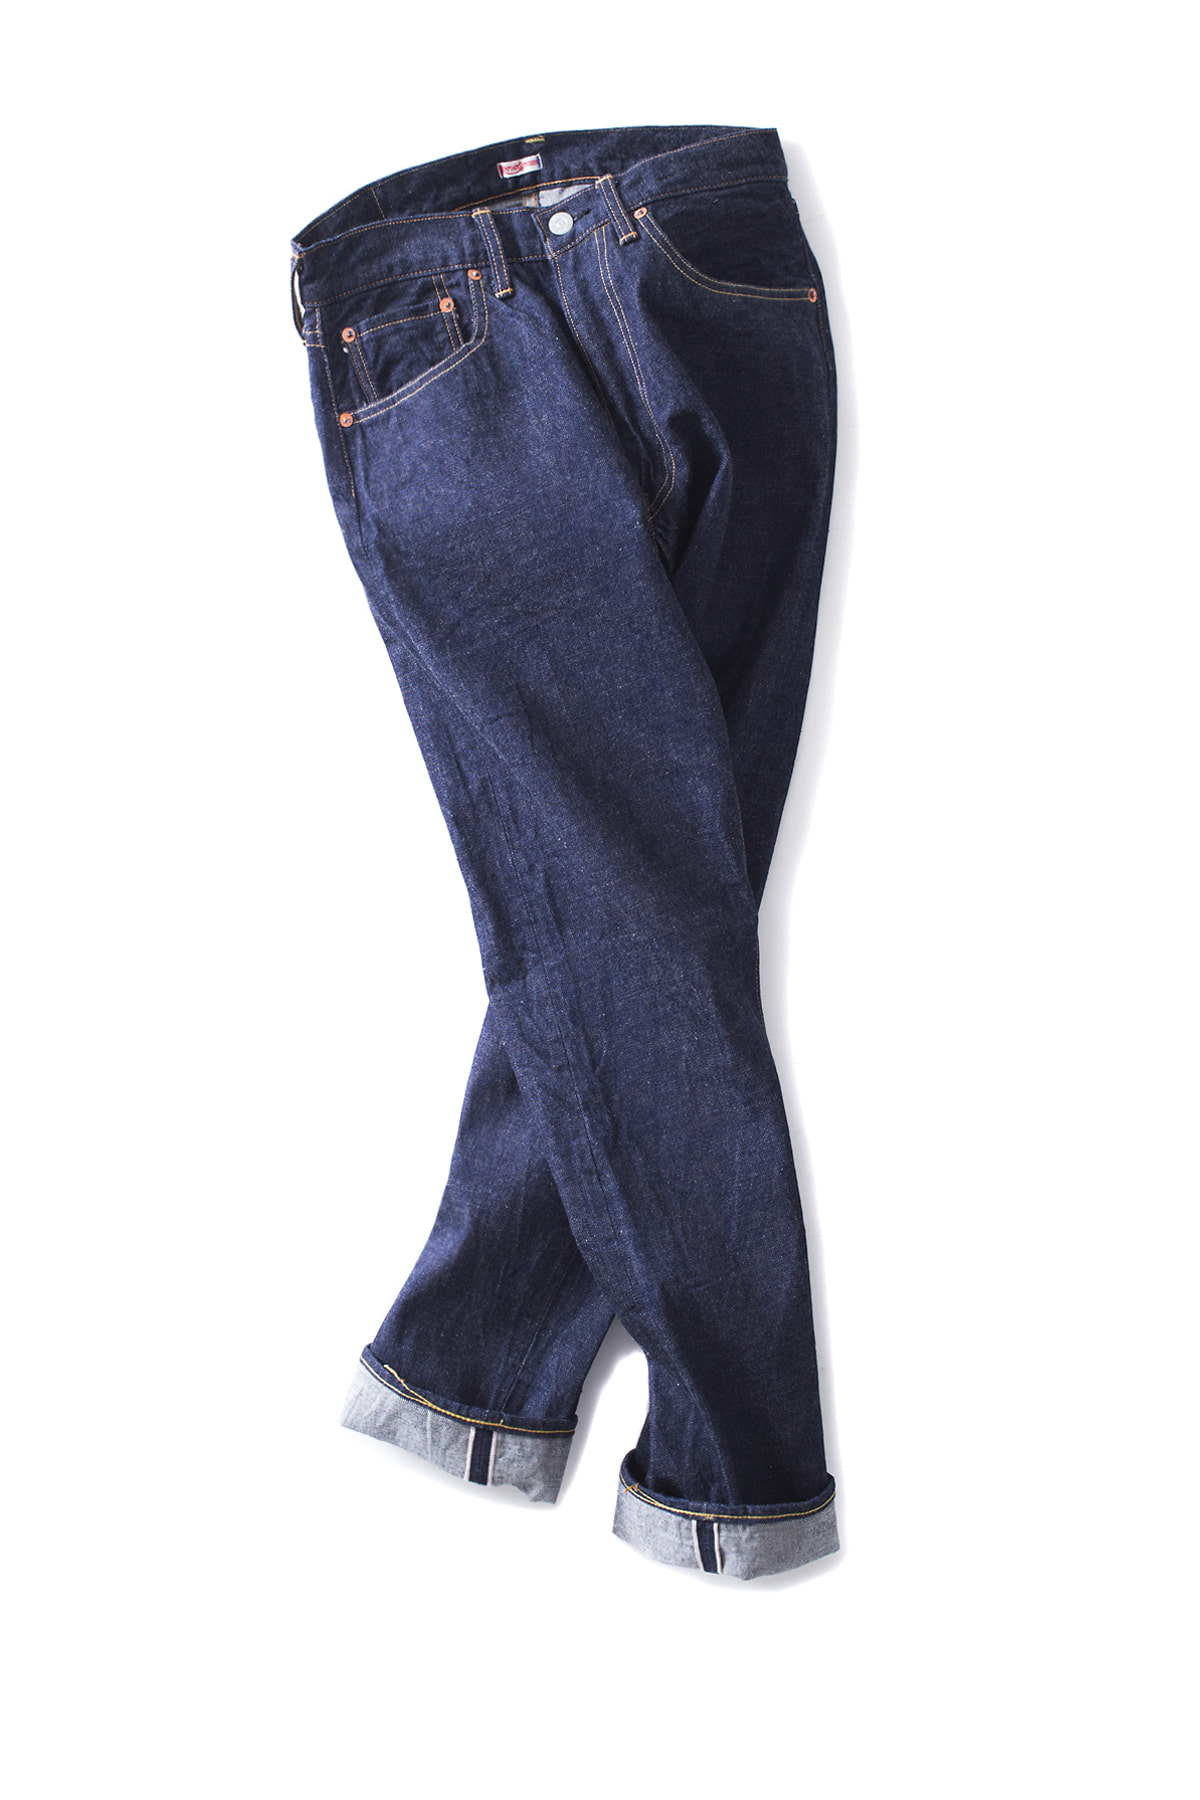 kaptain Sunshine : East Coast Fit denim pants (Indigo)